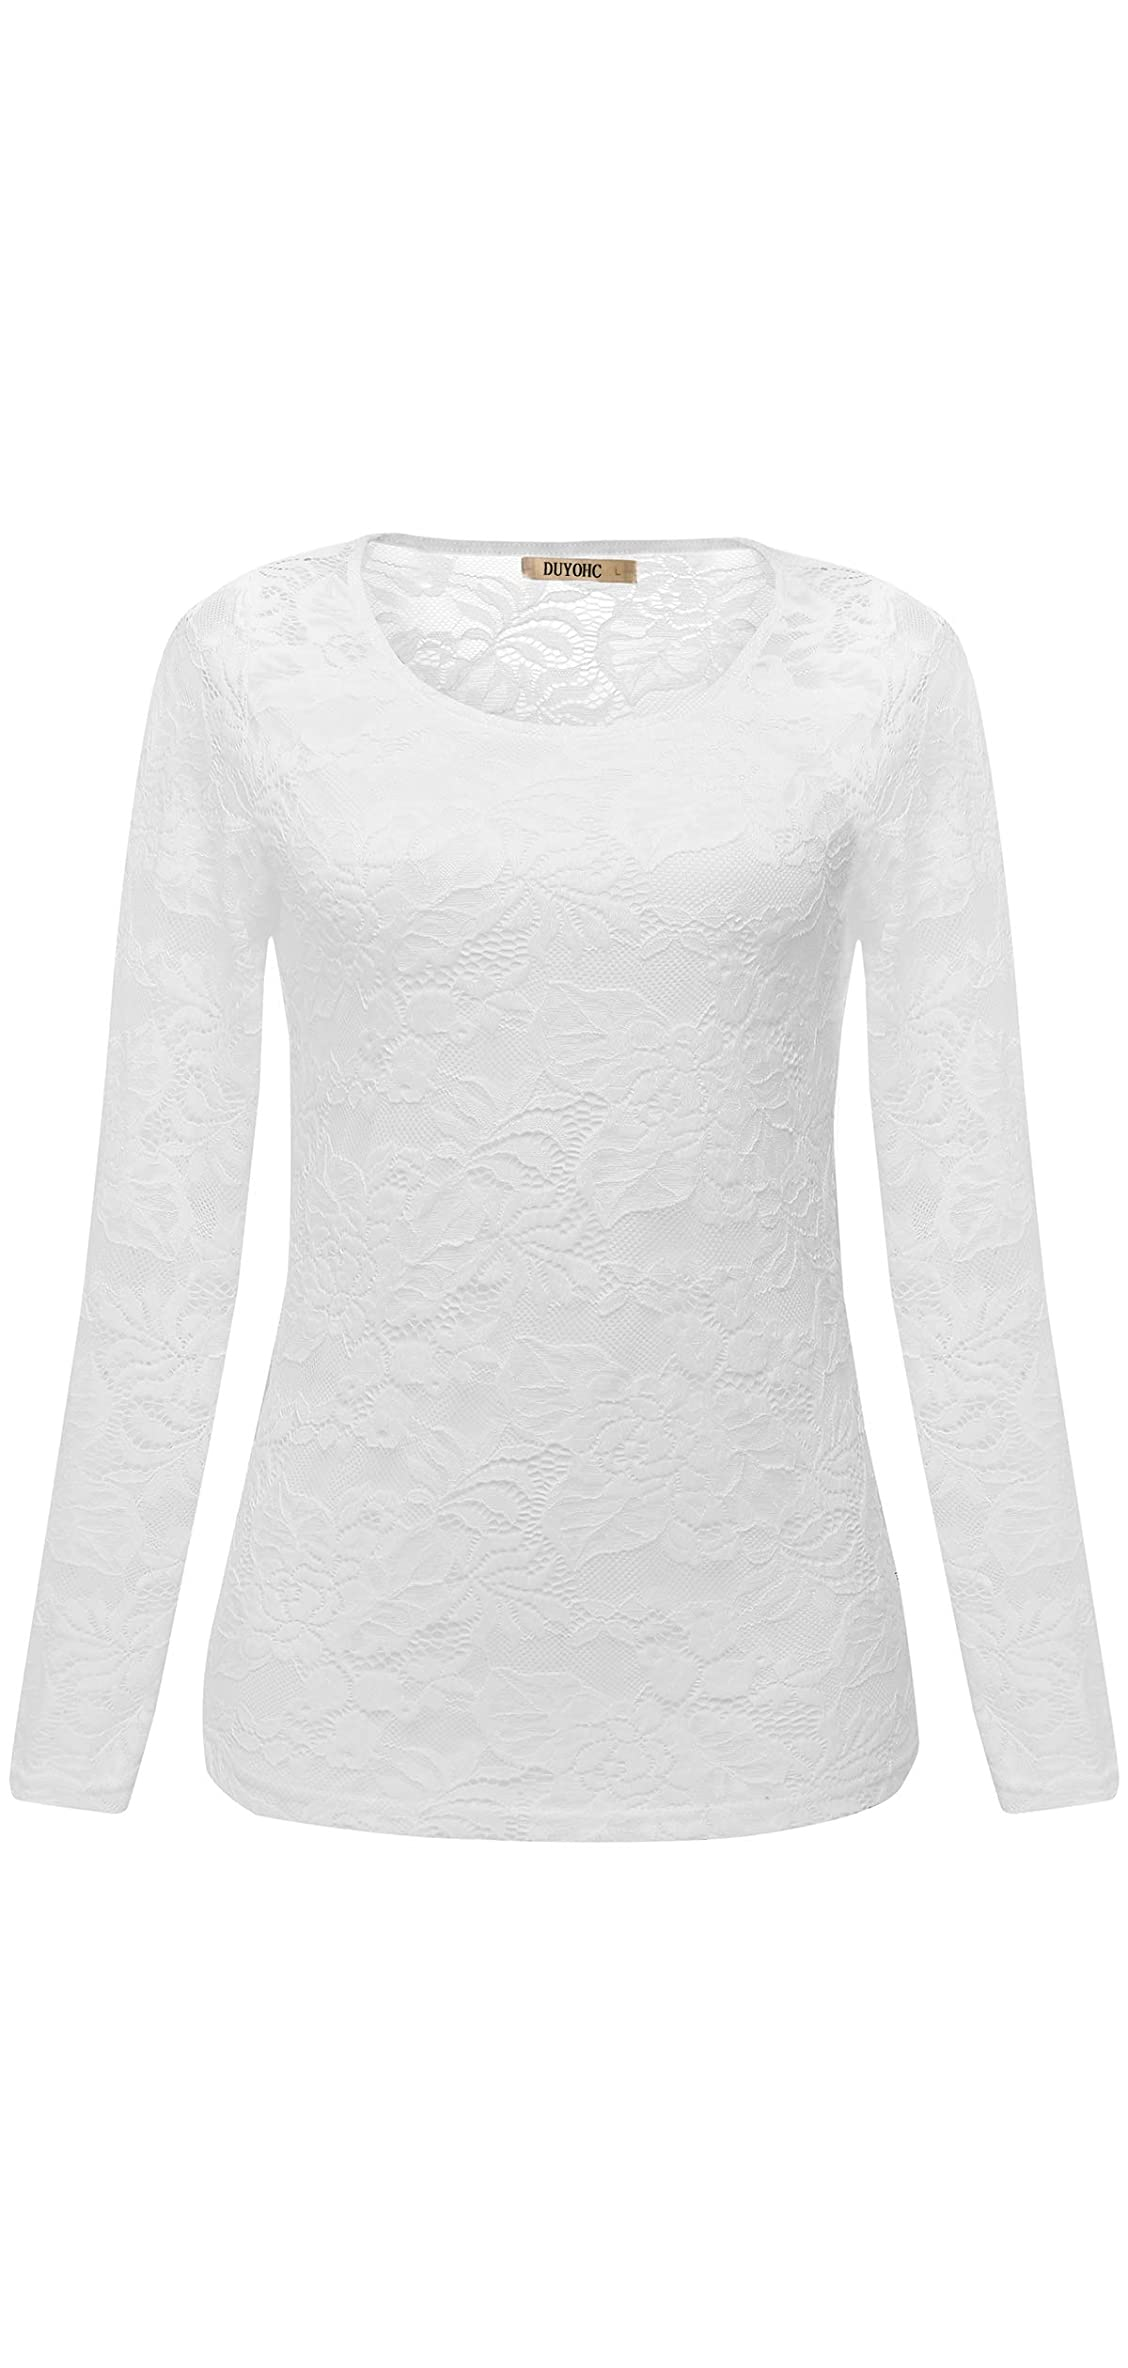 Womens Casual Tops Floral Lace Hollow Long Sleeve Shirt